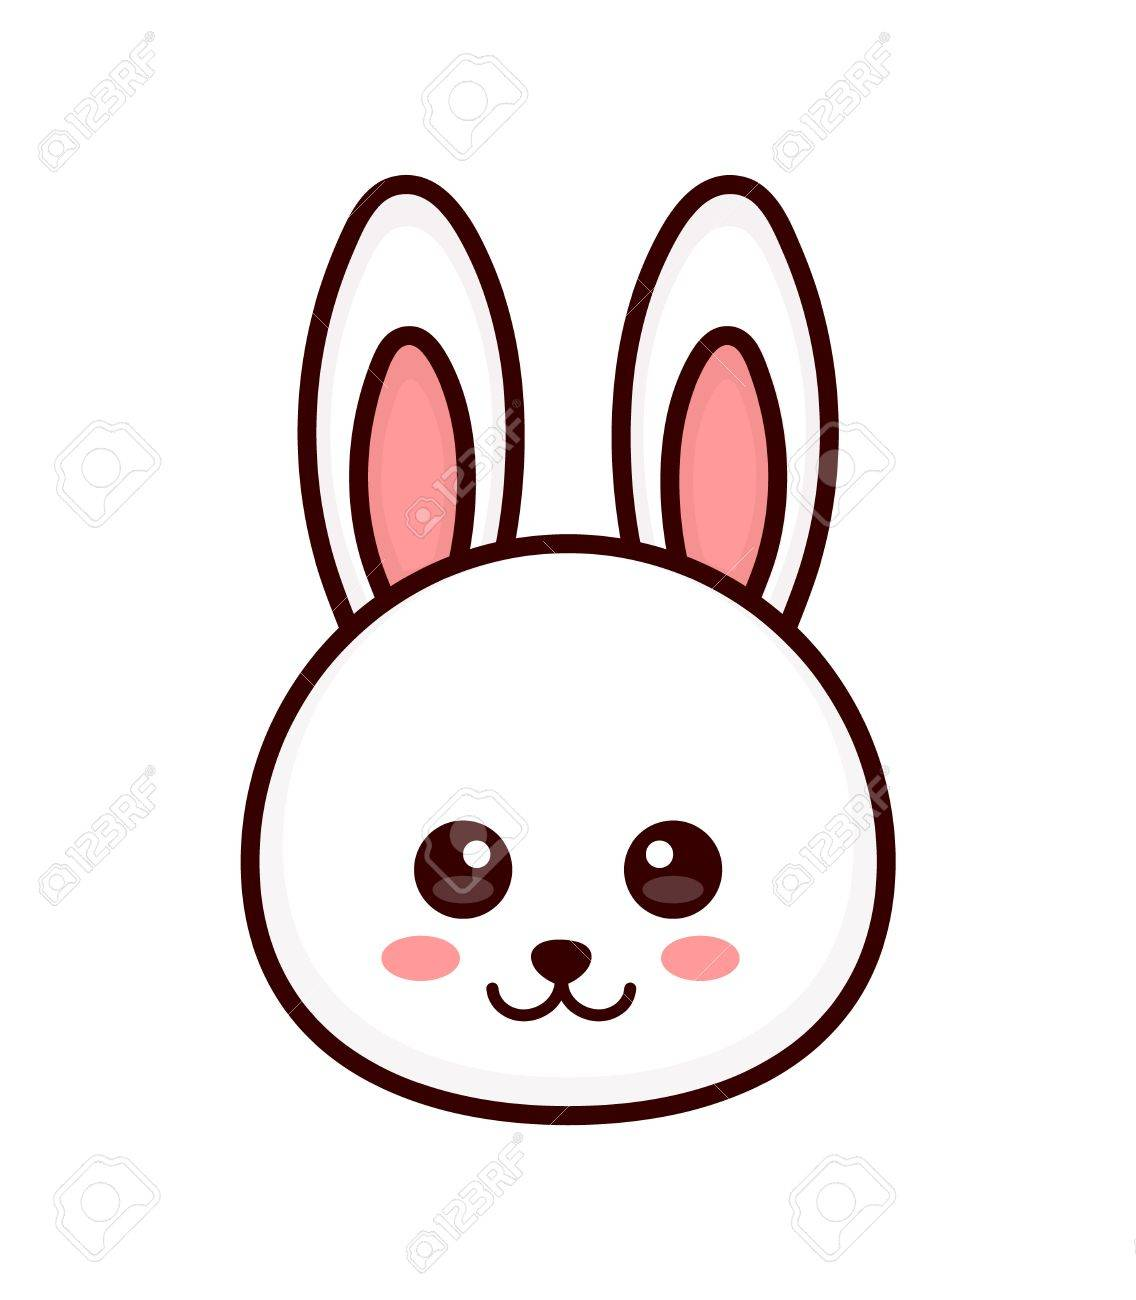 1136x1300 Wanted Bunny Cartoon Pic Easter Bugs Thumper Rabbit Png Download